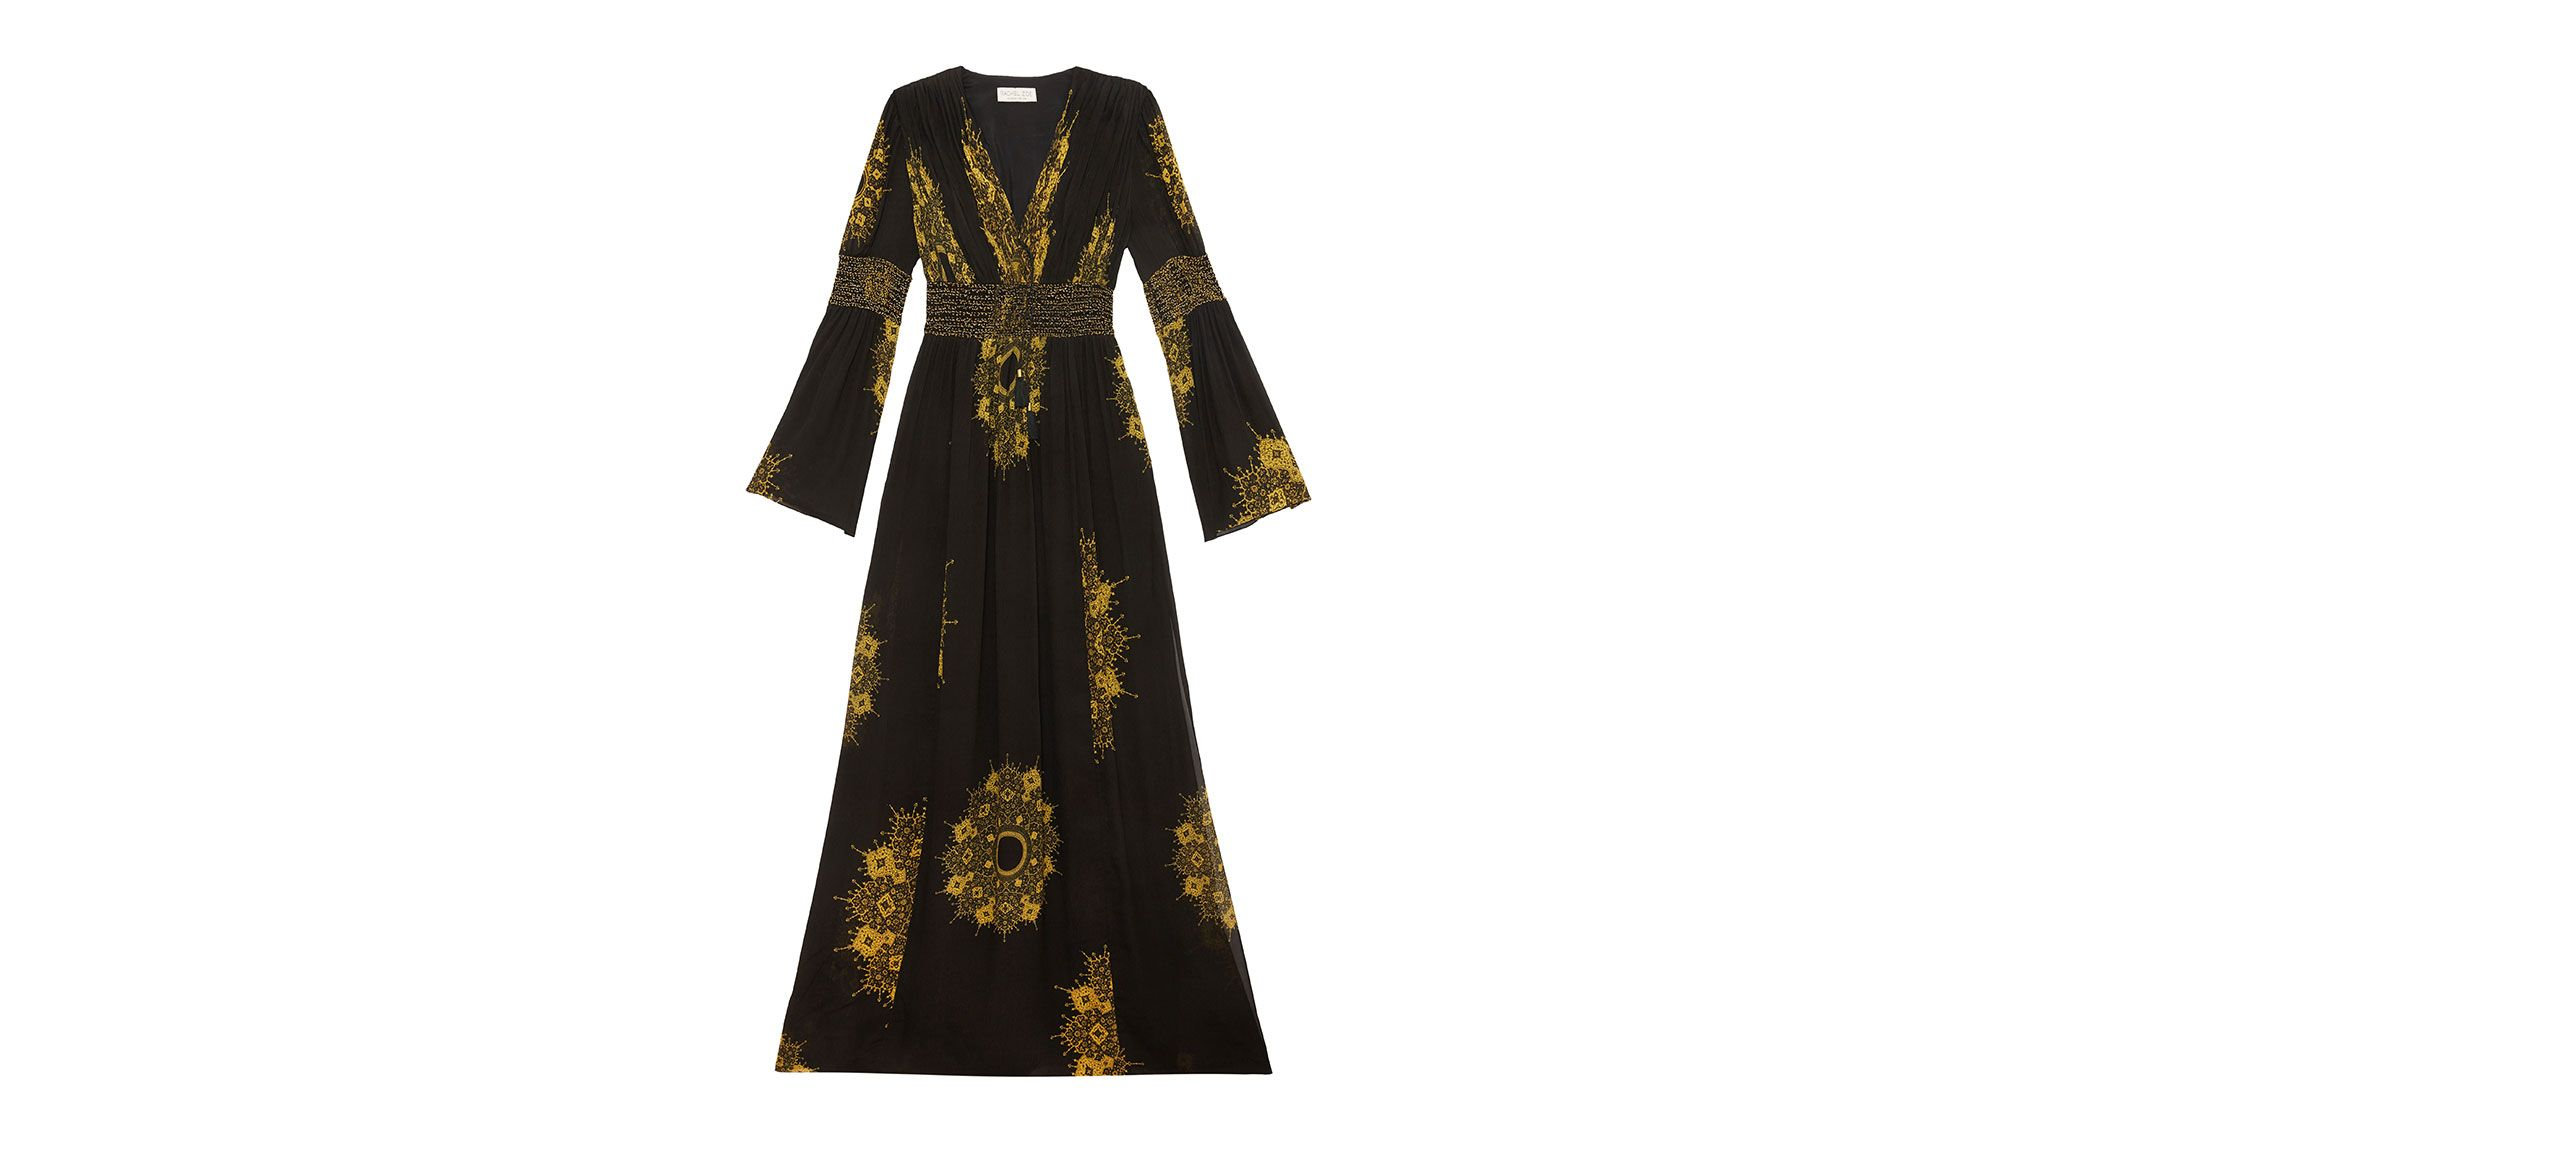 With a black and gold motif, bellsleeves and hand-beaded accents, the Blair maxi dress exudes elegance effortlessly.